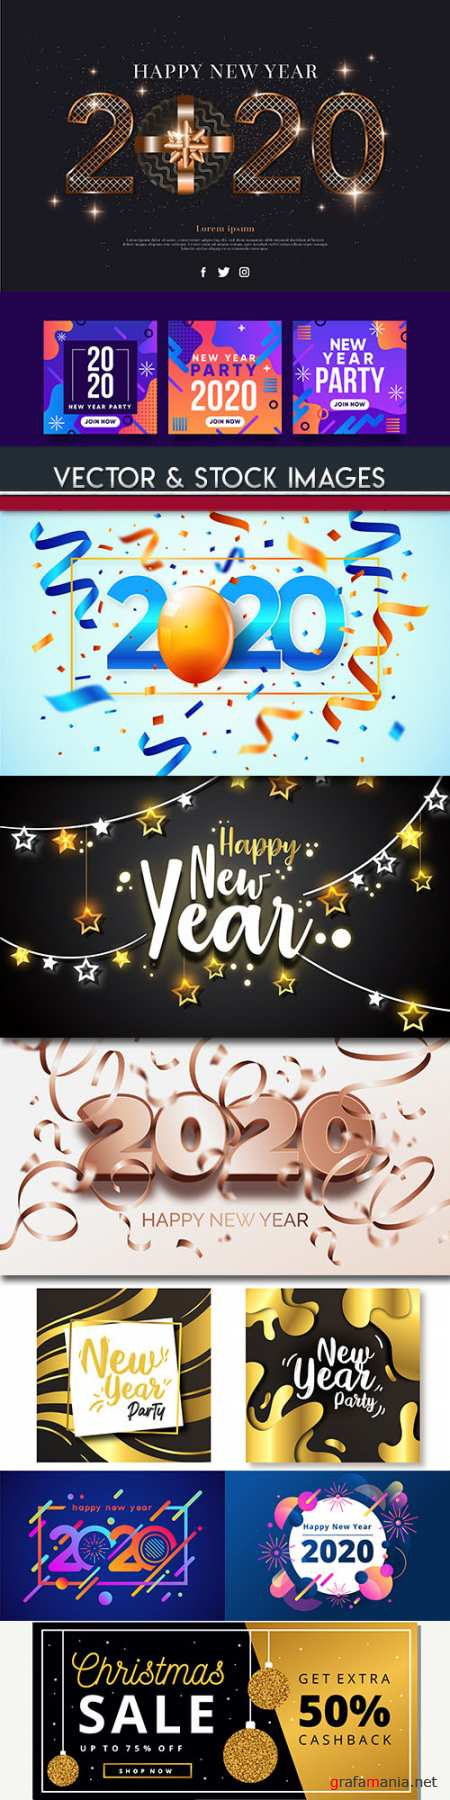 New Year and Christmas decorative 2020 illustration 14